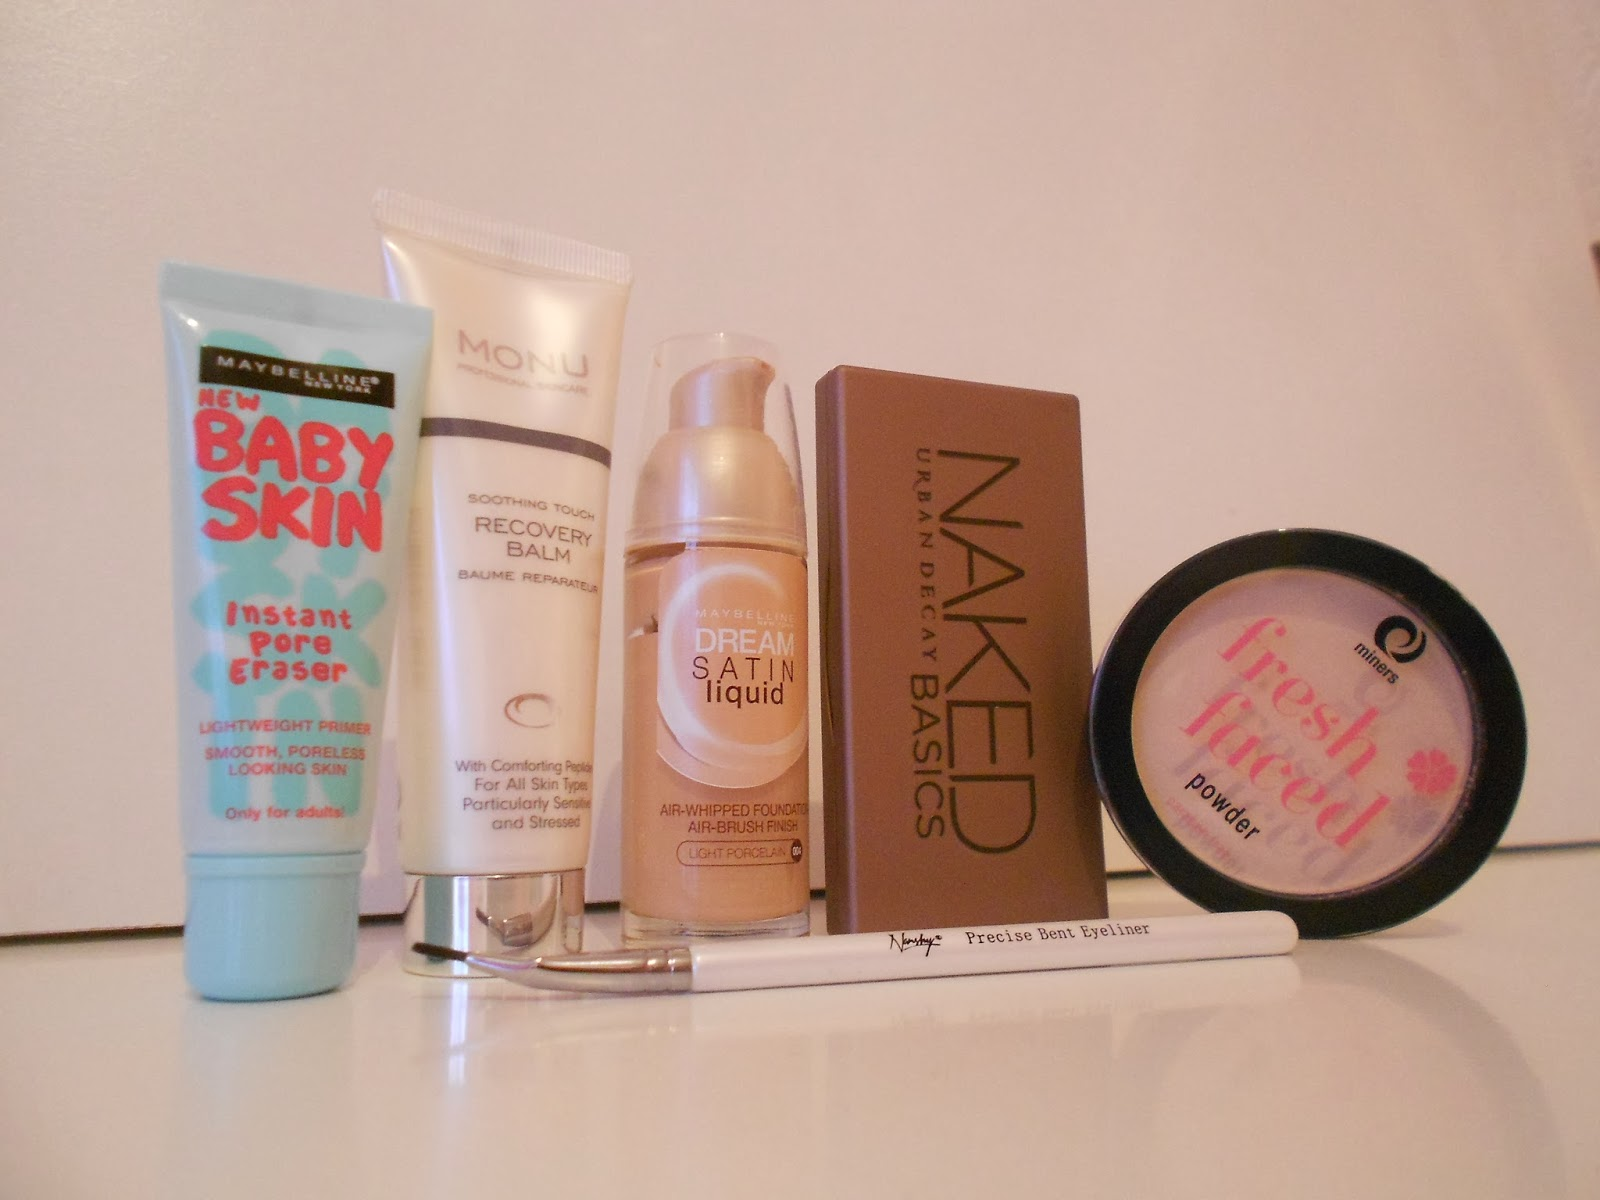 uk beauty blog budget baby skin primer, monu skincare recovery balm, maybelline dream satin, naked basics urban decay miners cosmetics fresh faced nanshy eyeliner brush